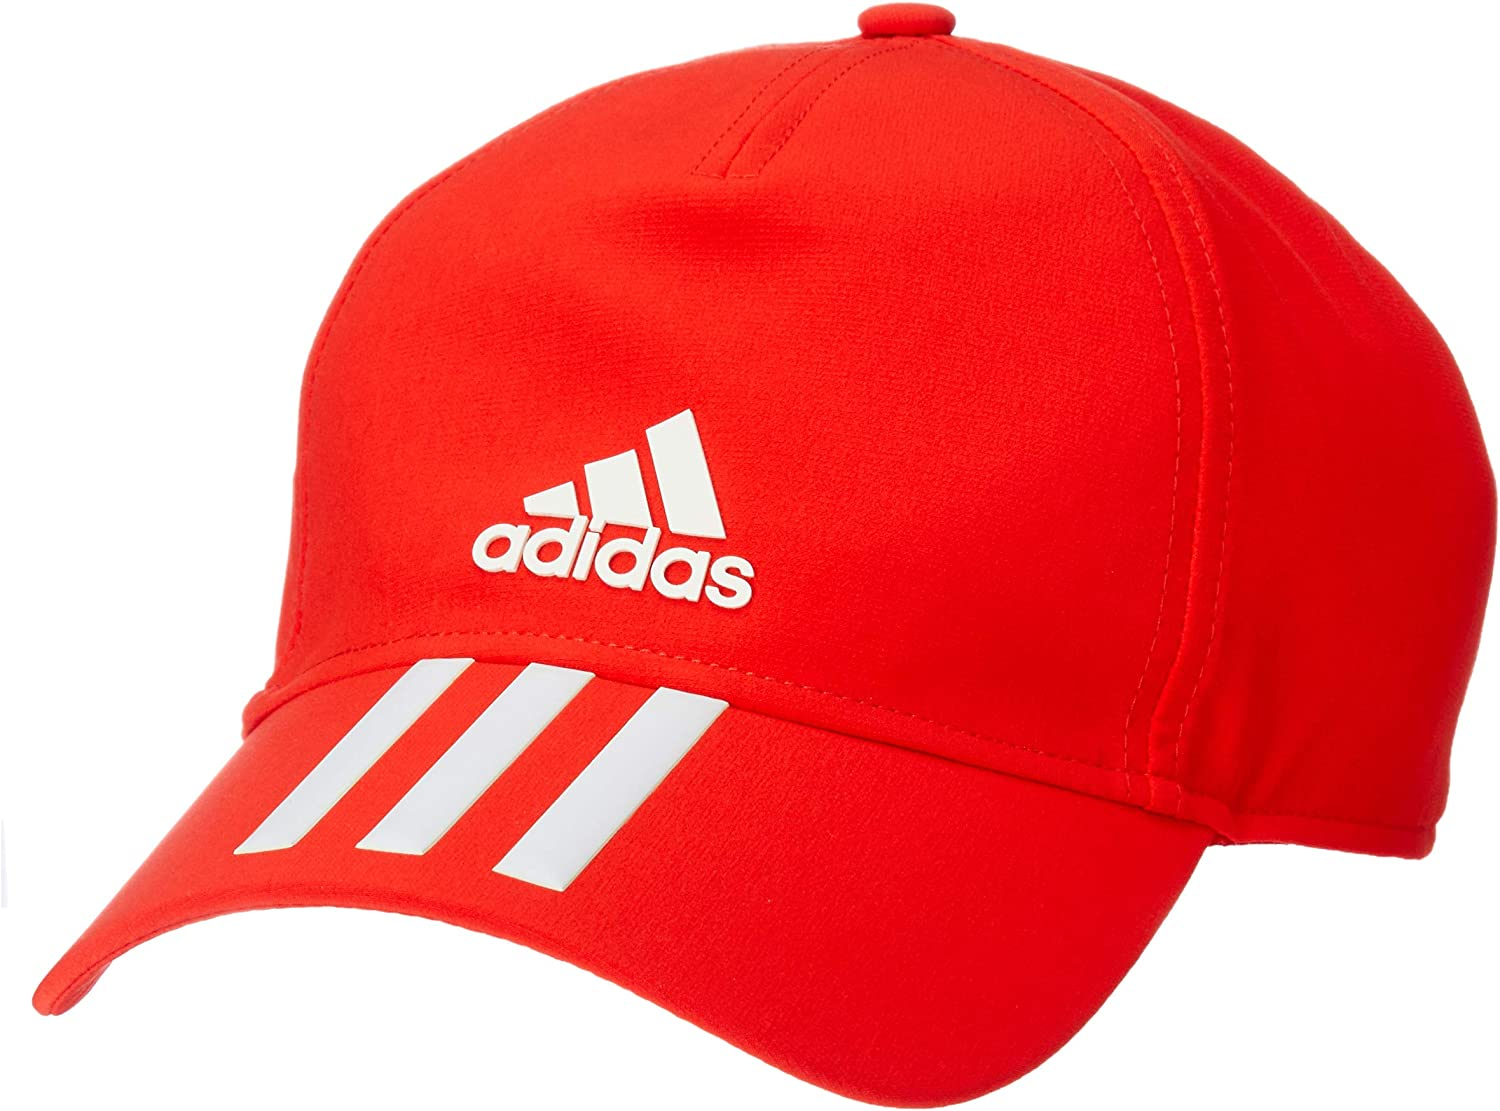 adidas 6 Panel 3 Stripes Climalite Casquette Homme Active RedWhite FR : Taille Unique (Taille Fabricant : OSFM)